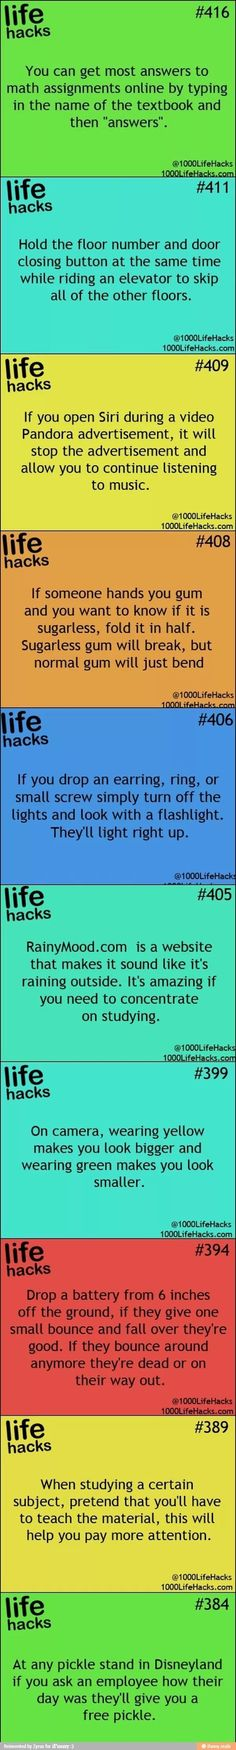 Funny Animal Signs Life Hacks Simple Life Hacks And Lifehacks - 20 life hacks really shouldnt try